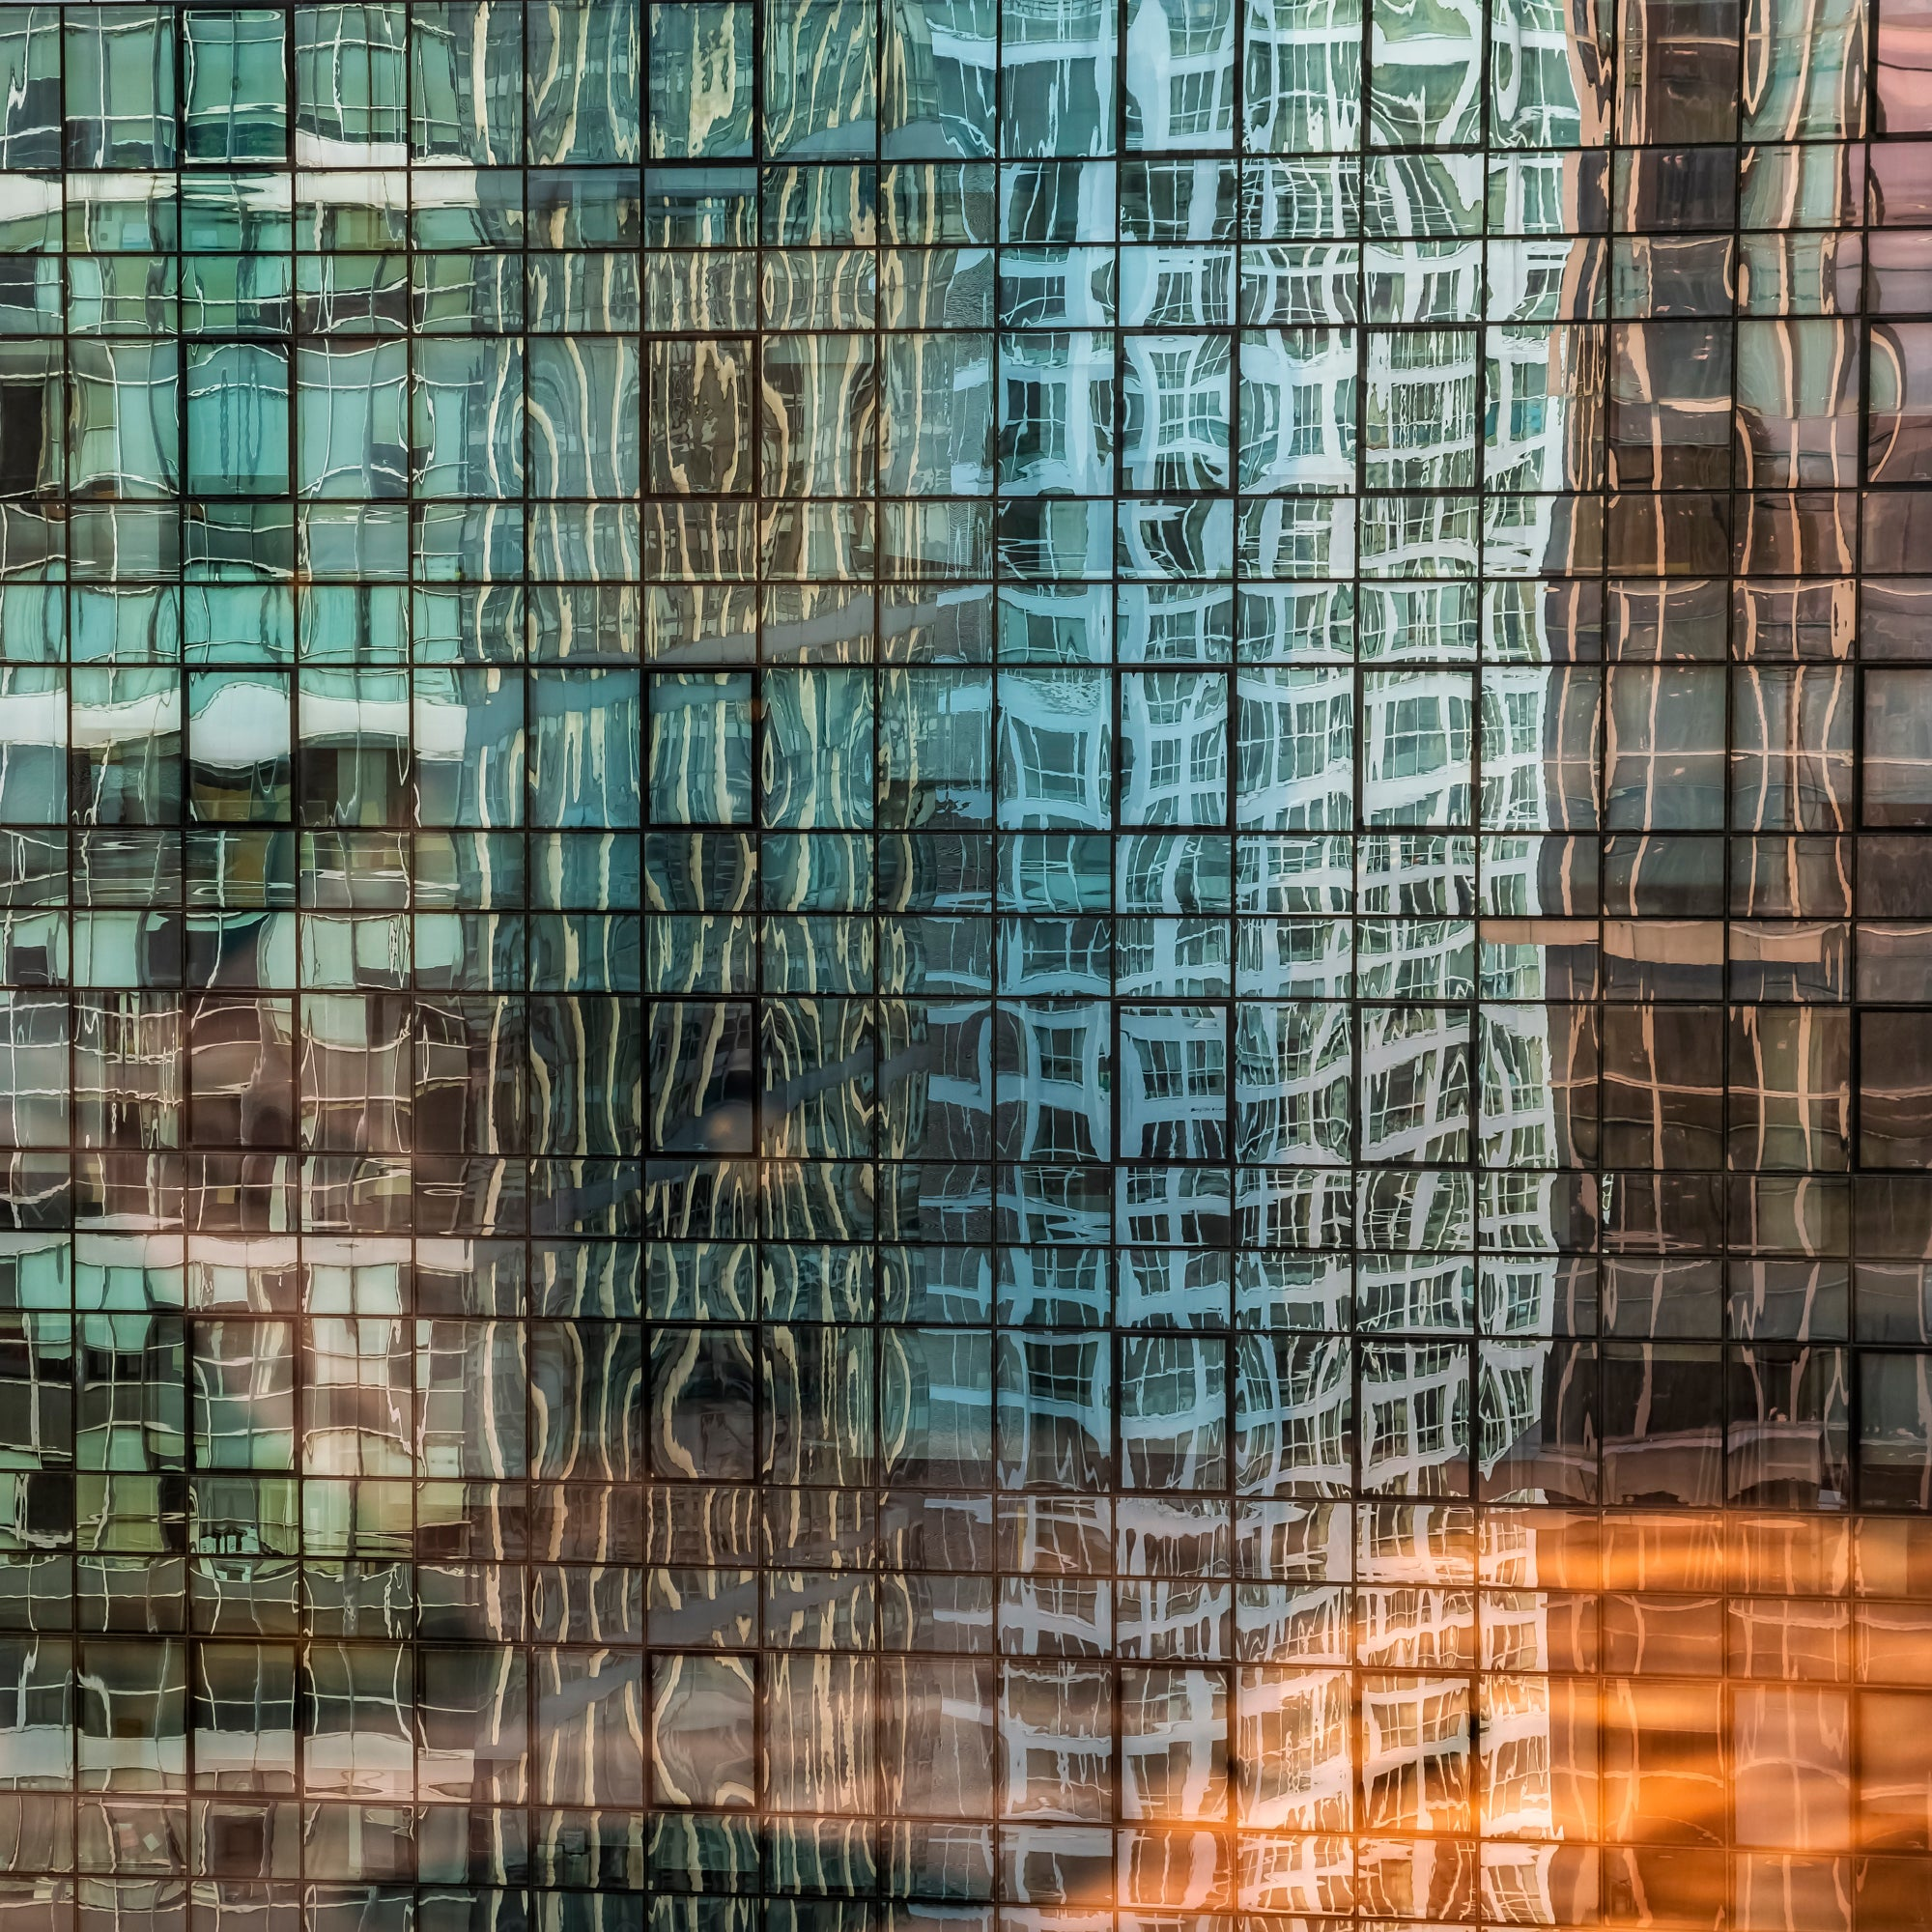 'Beijing Building Reflections', Tom Stahl, 2018